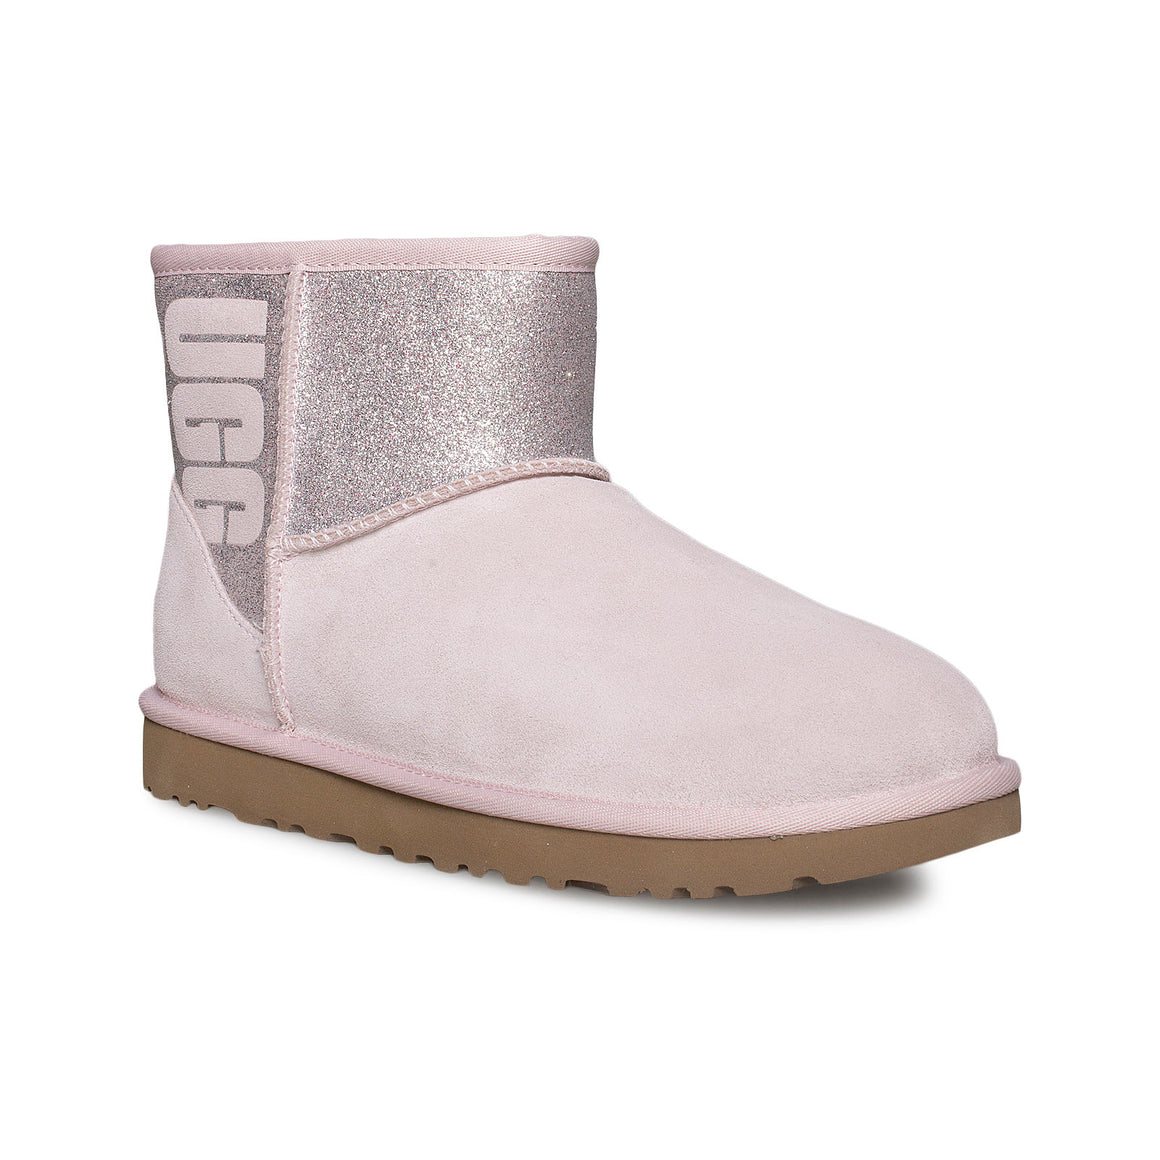 UGG Classic Mini UGG Sparkle Seashell Pink Boots - Women's